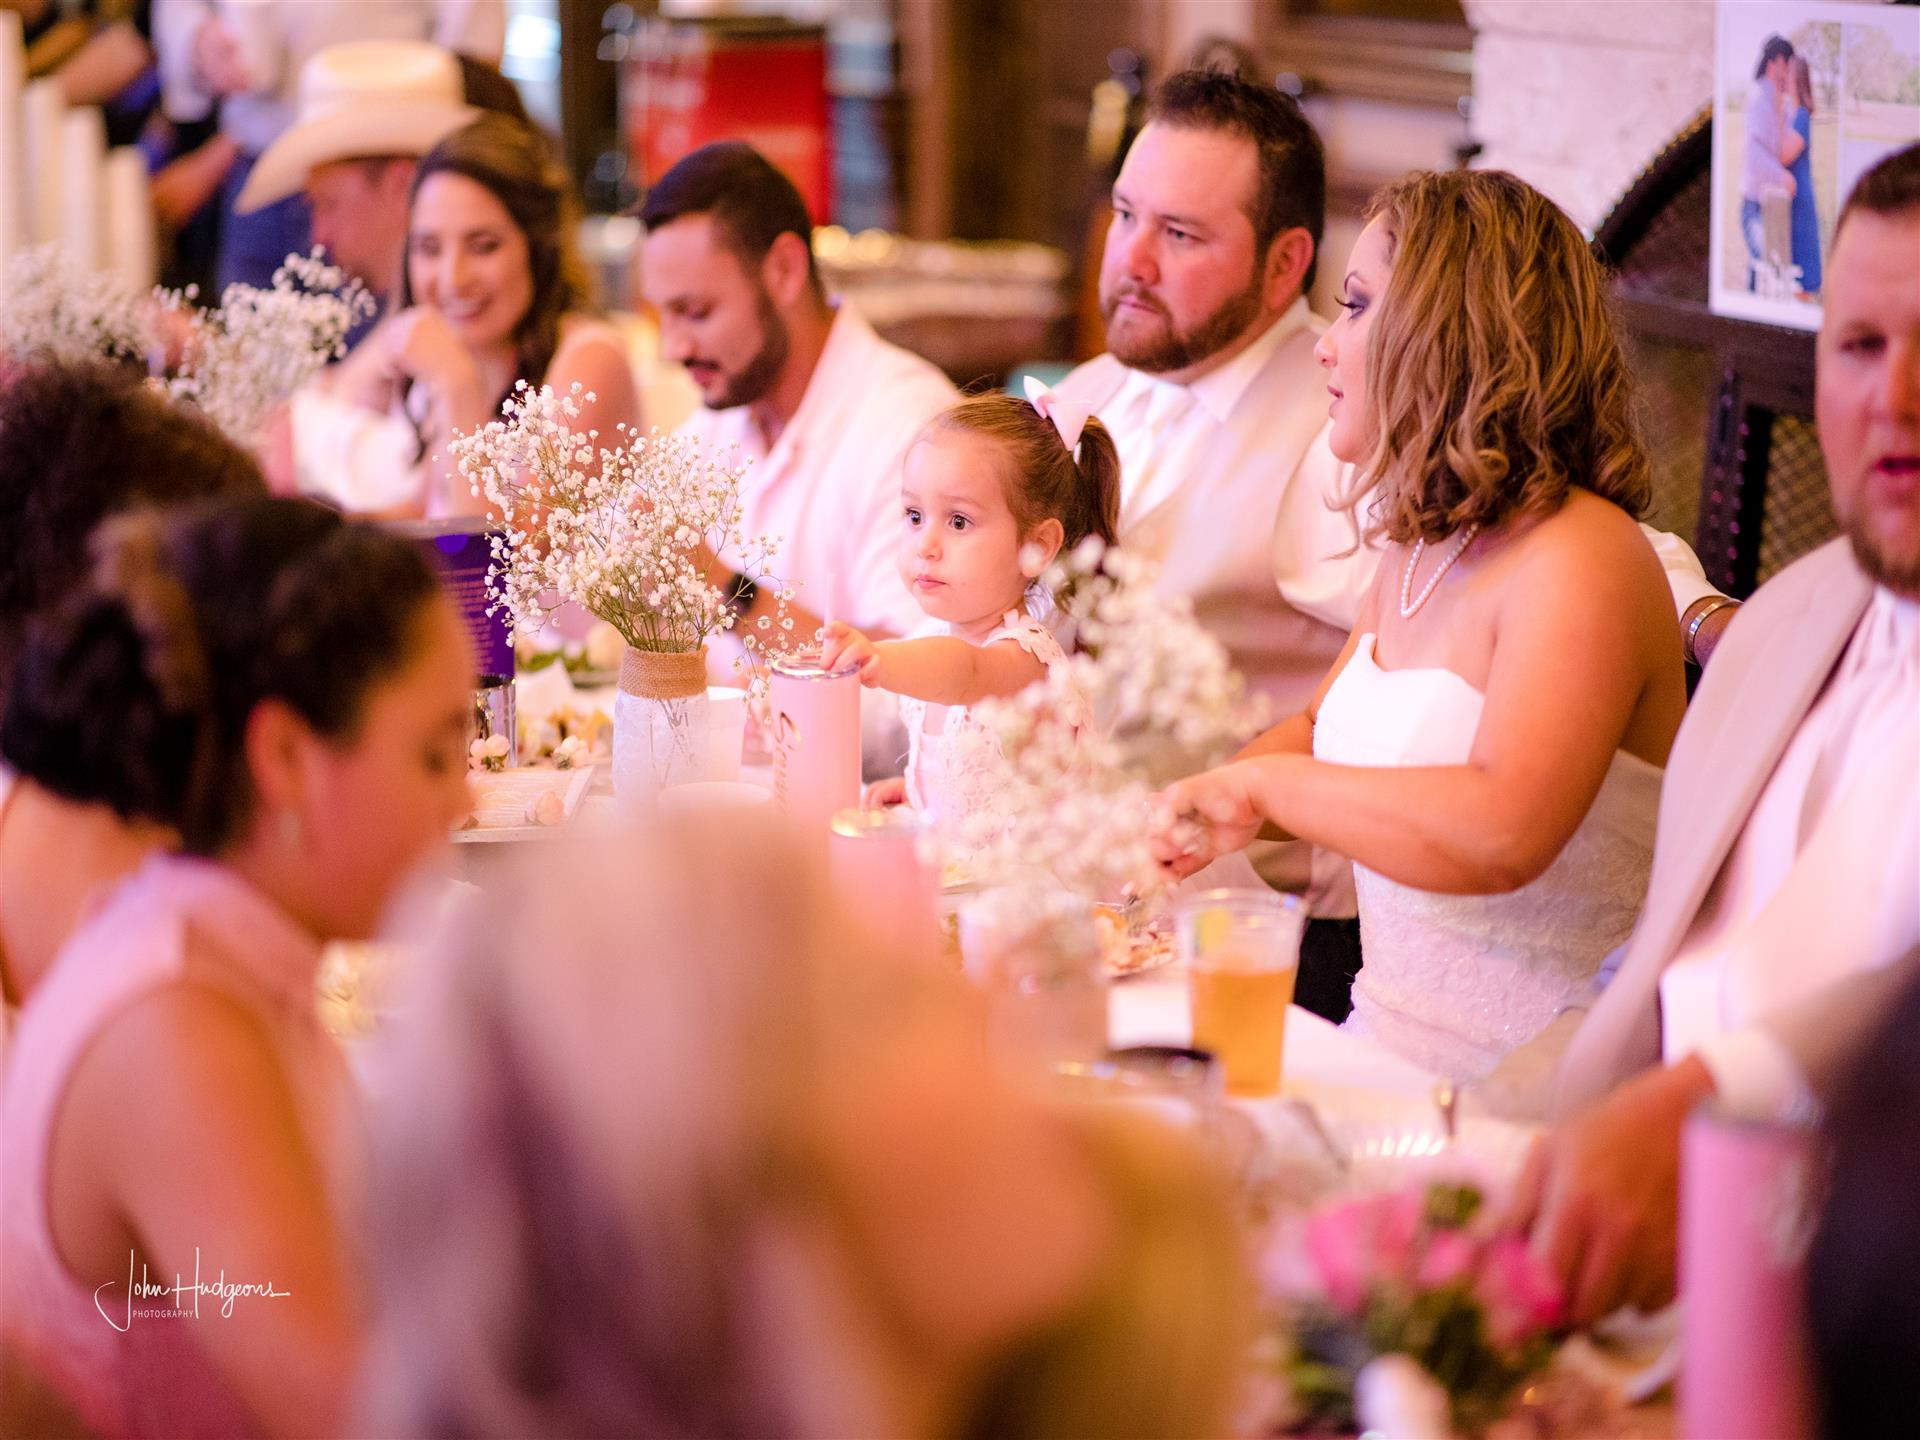 Guests sitting at long table at wedding event